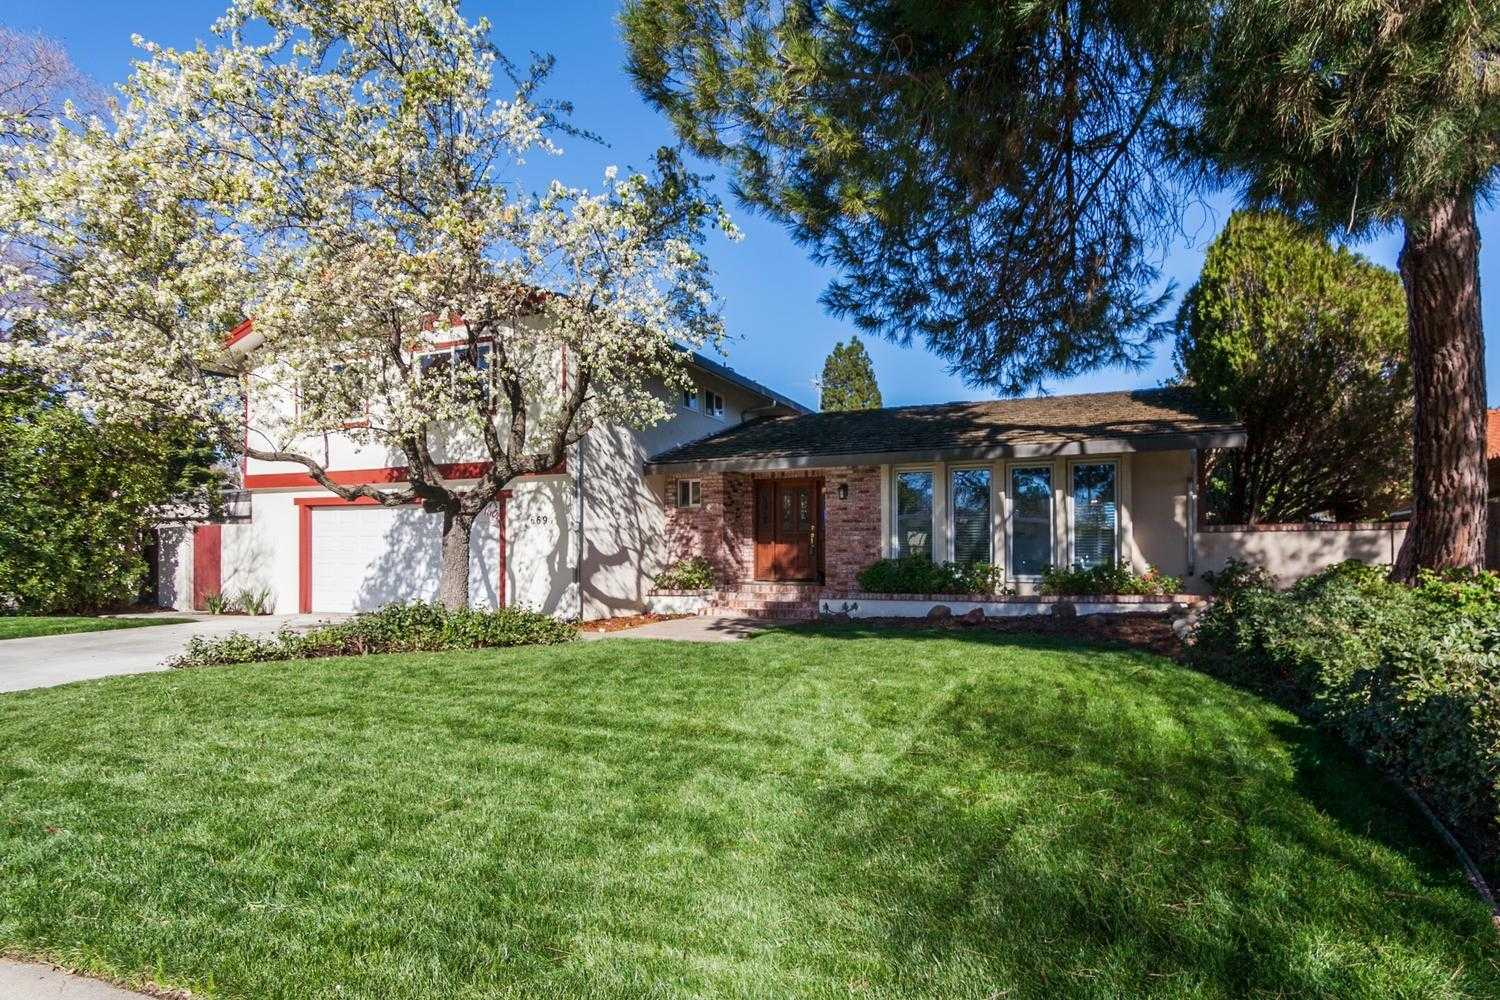 $839,000 - 4Br/4Ba -  for Sale in Covell Park, Davis